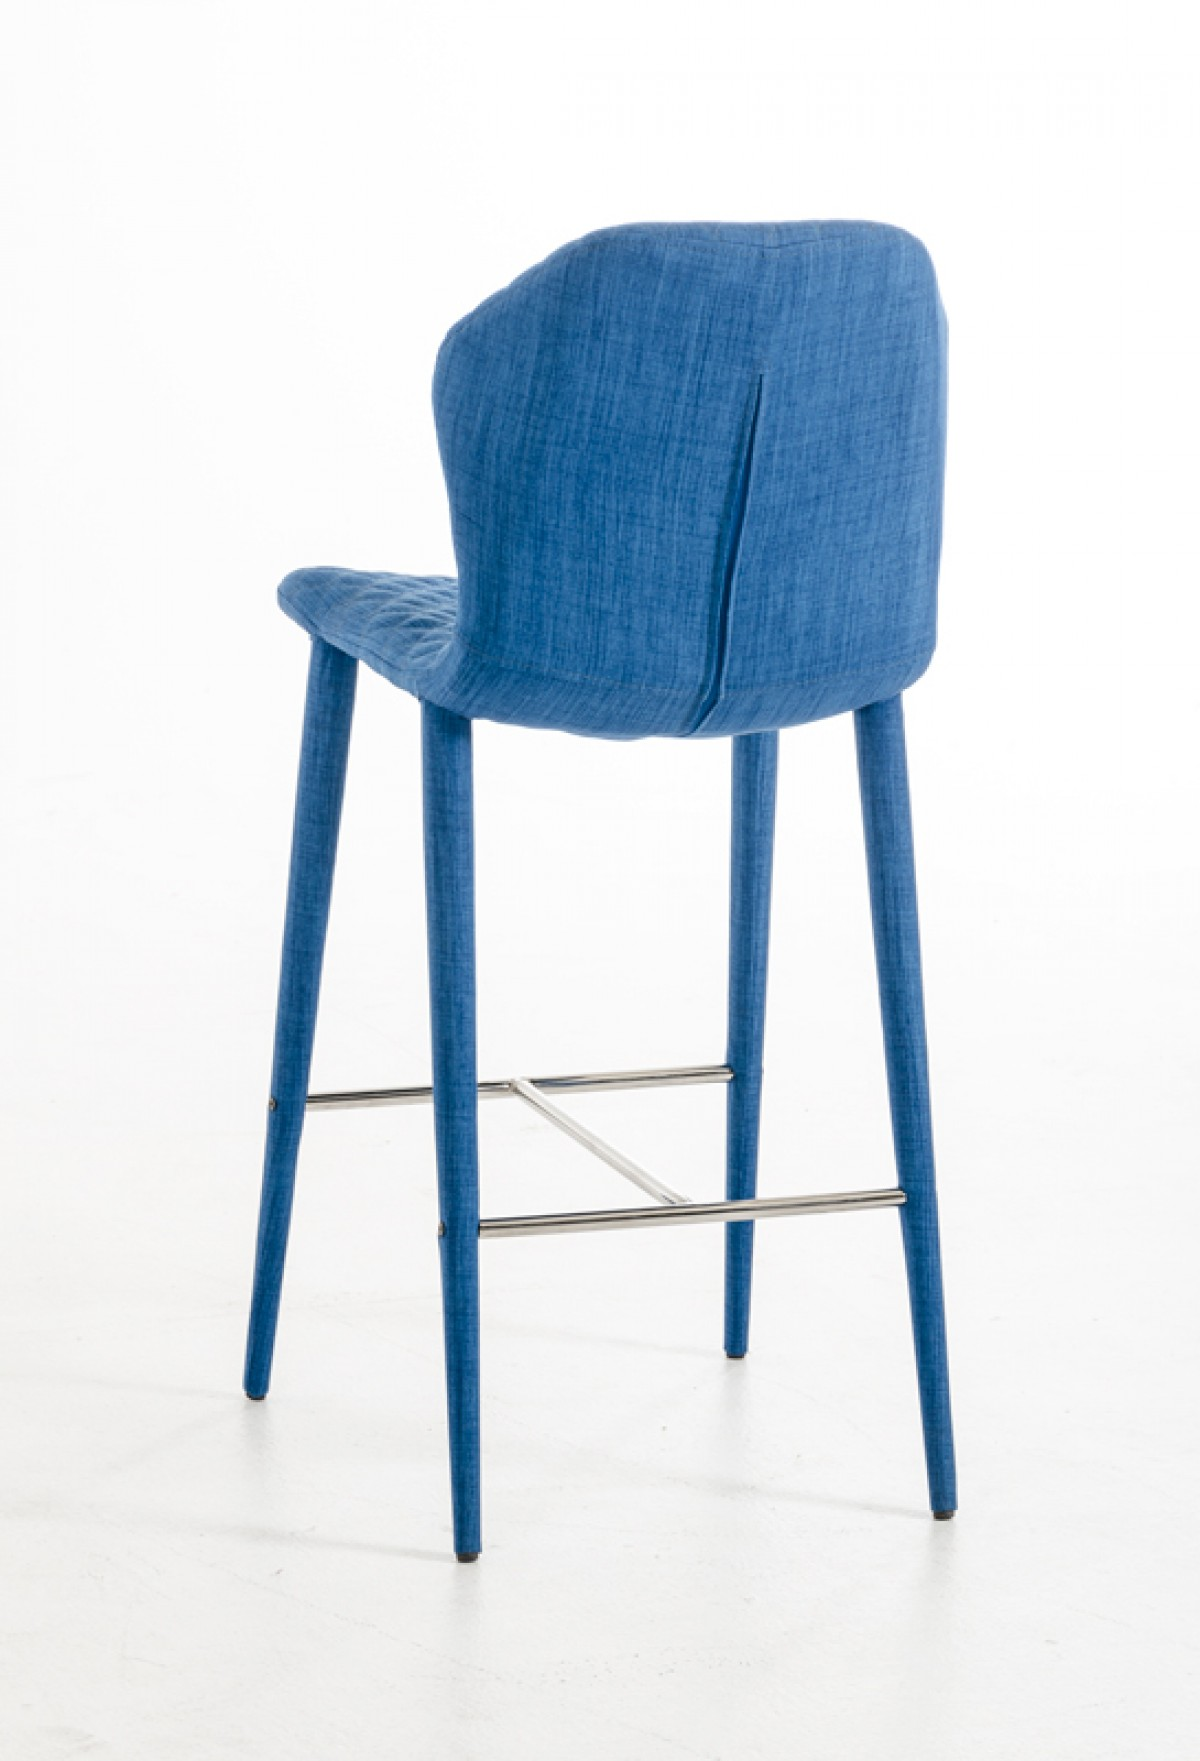 Modrest Astoria Modern Blue Fabric Bar Stool : astoria03dsc1561 from www.vigfurniture.com size 1200 x 1761 jpeg 173kB